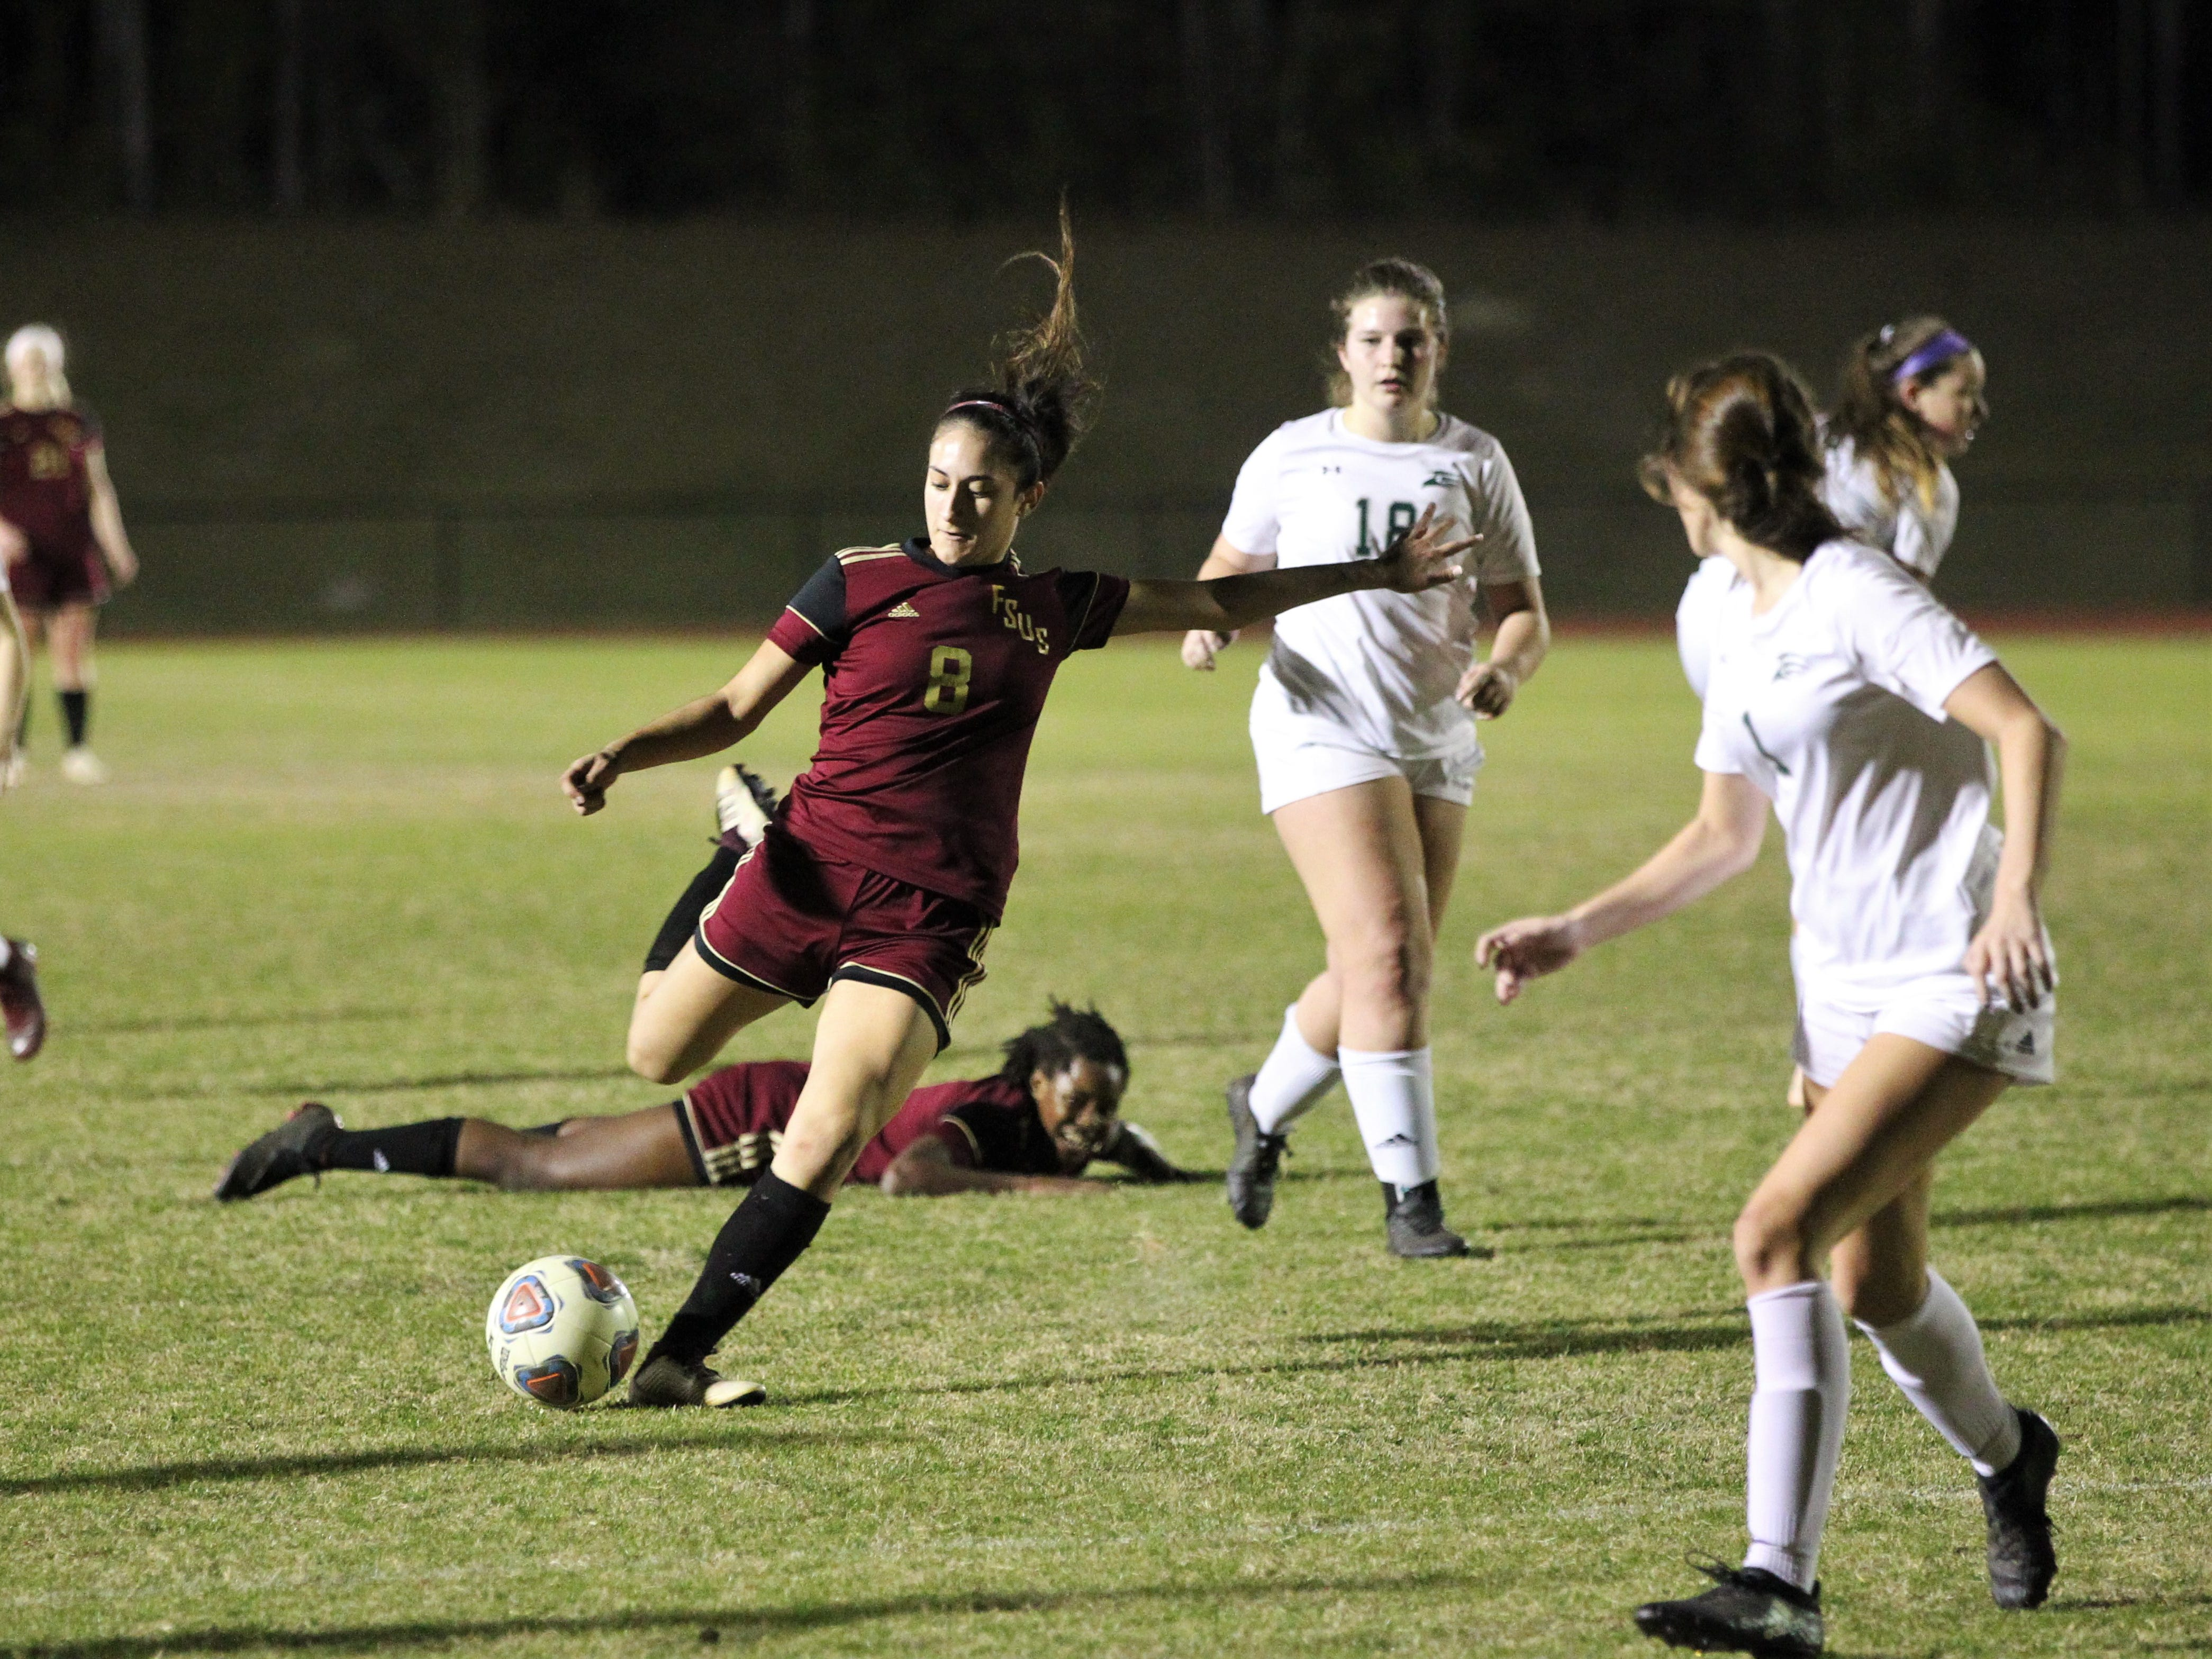 Florida High's Lily Quijada sets up for a shot as South Walton edged the Seminoles 5-4 in a penalty-kick shootout during a Region 1-2A semifinal on Feb. 8, 2019.